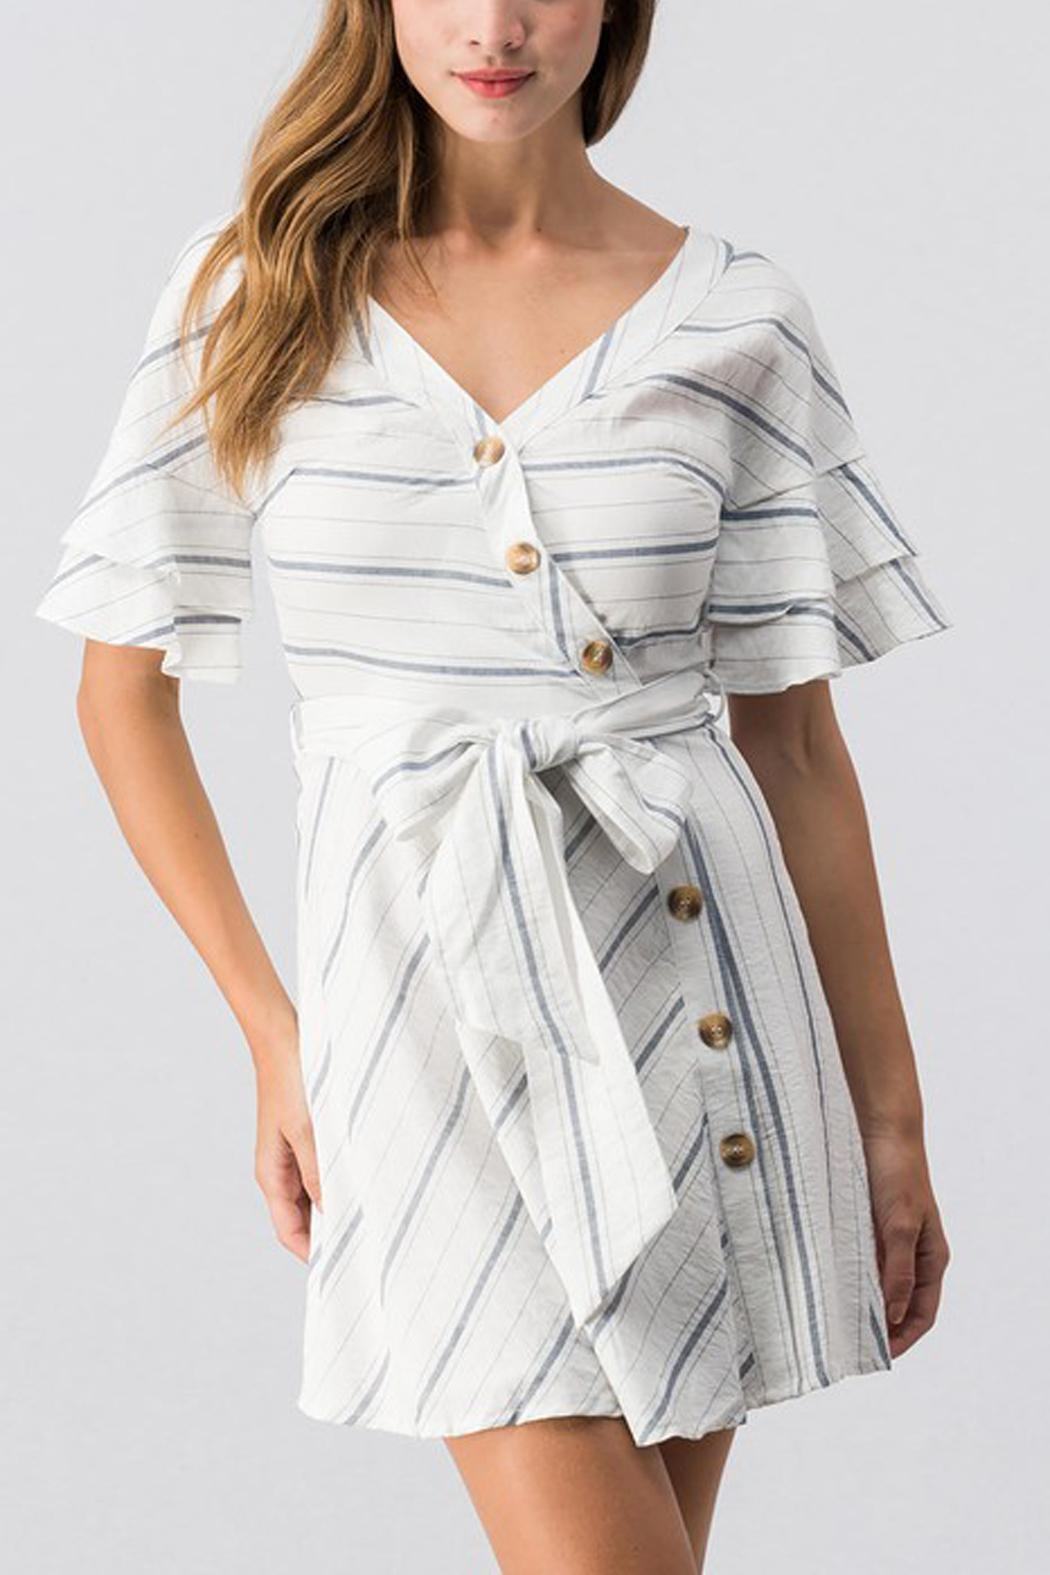 essue White Striped Dress - Main Image